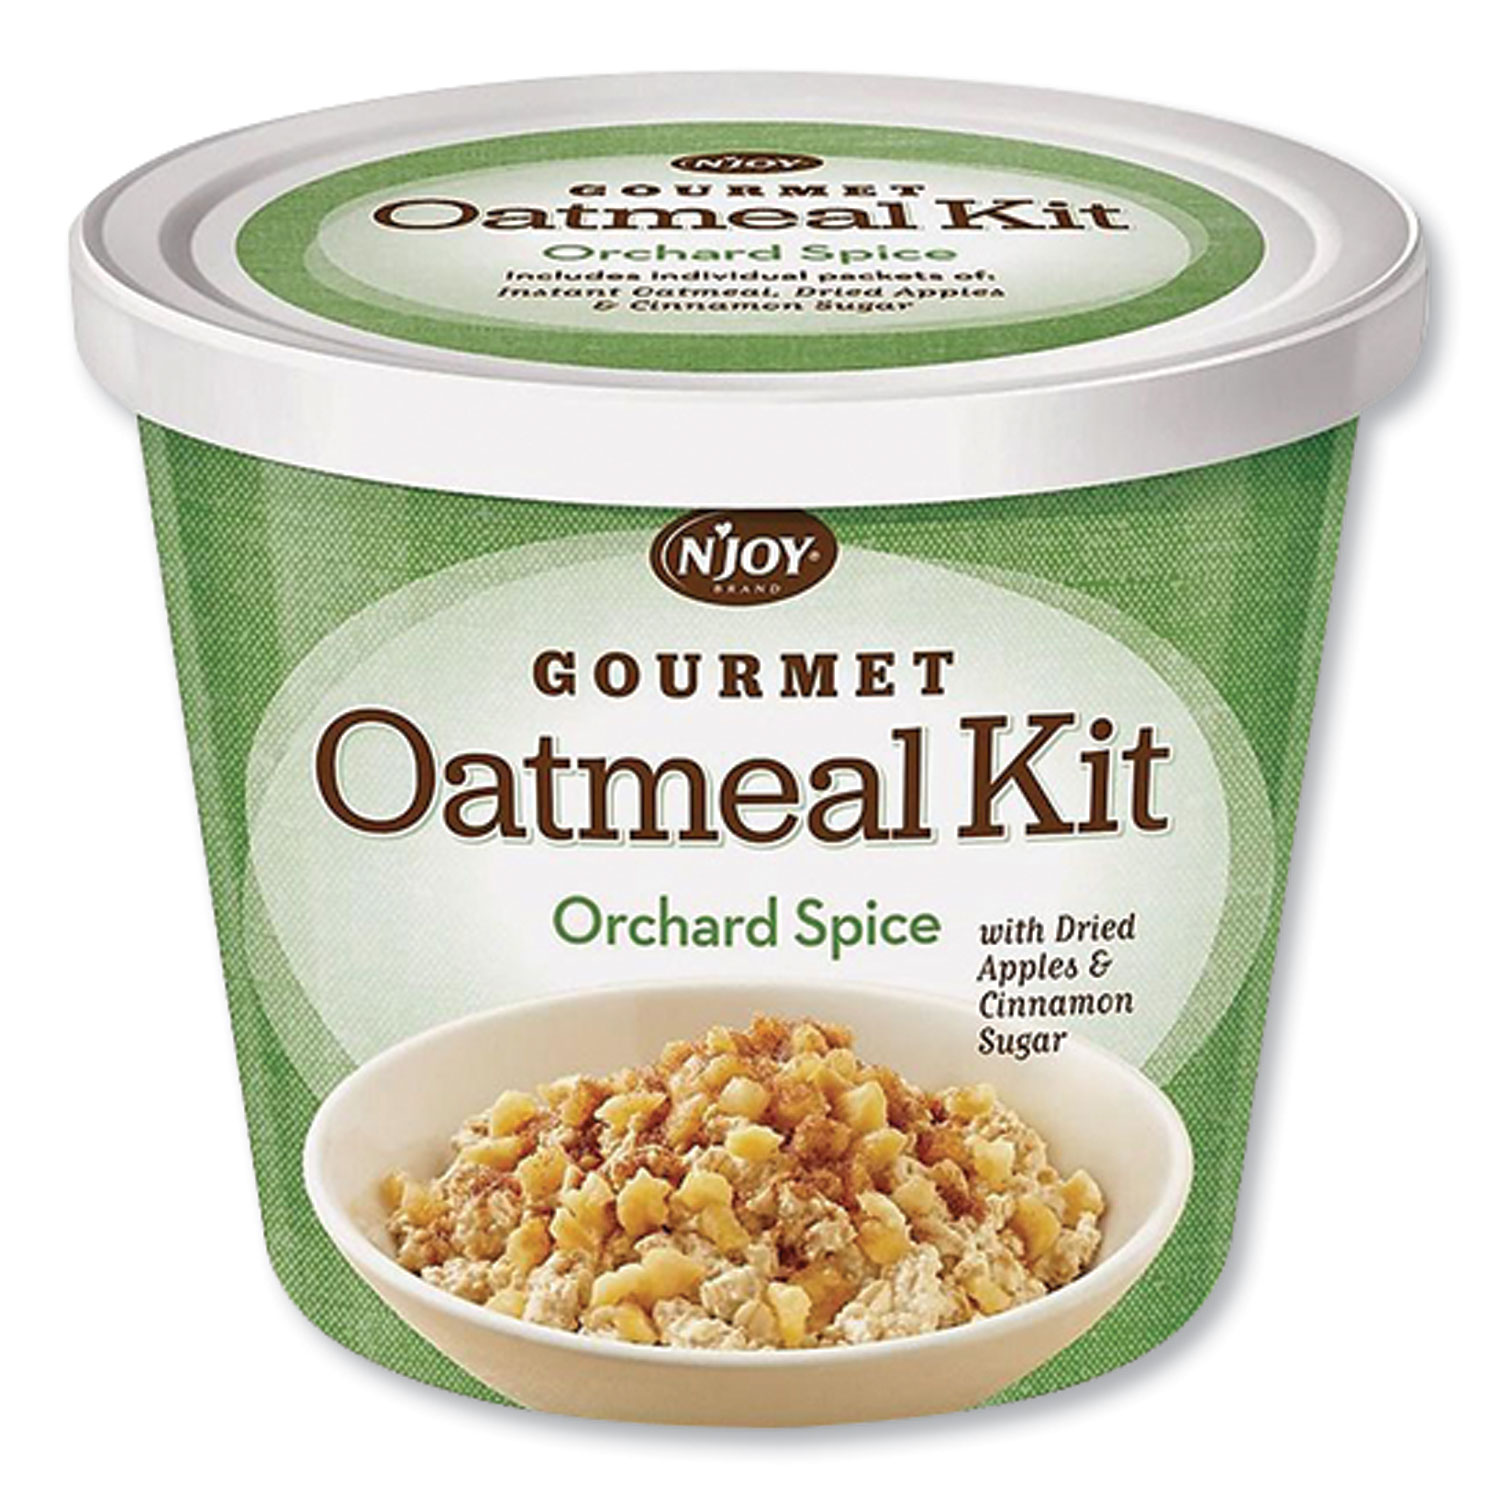 NJoy Gourmet Oatmeal Kit, Orchard Spice, 2.55 oz Cup, 8/Carton